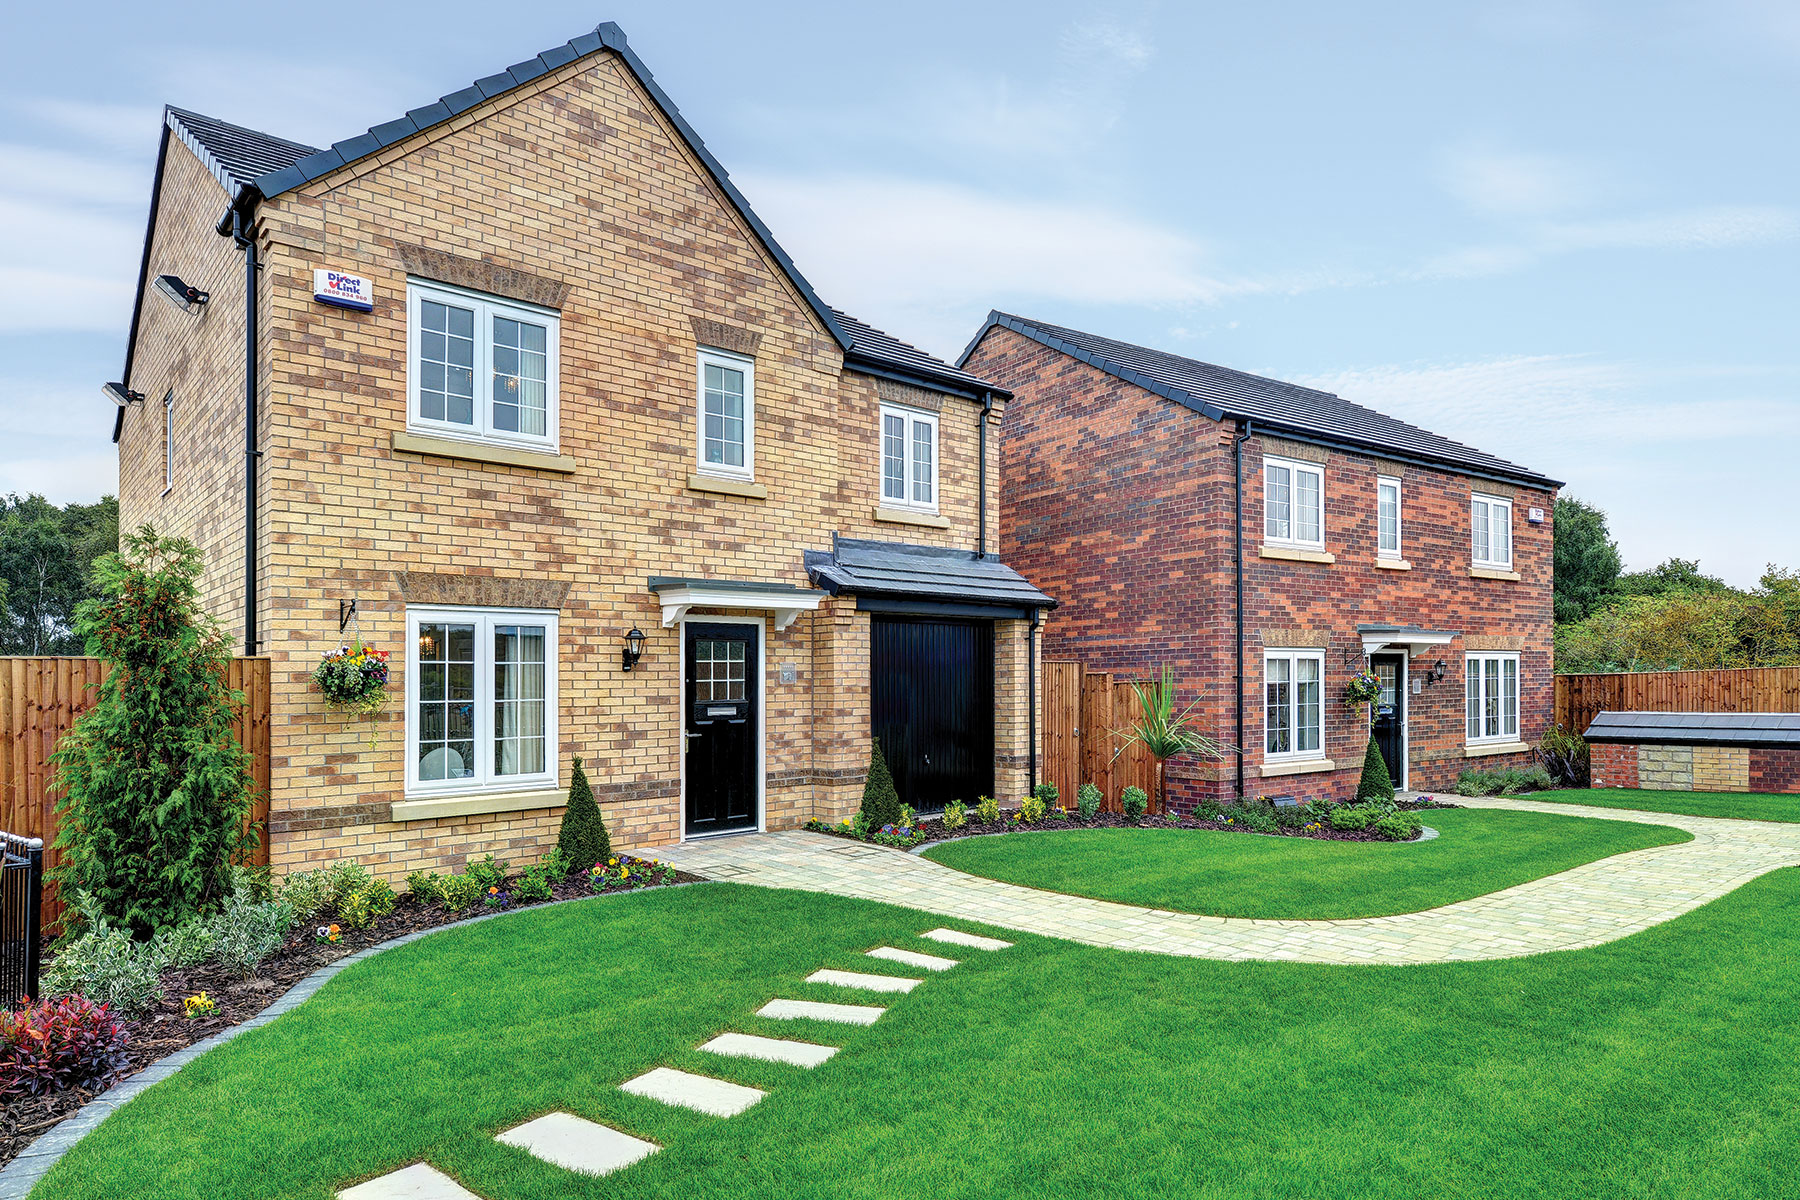 Westlands-showhomes